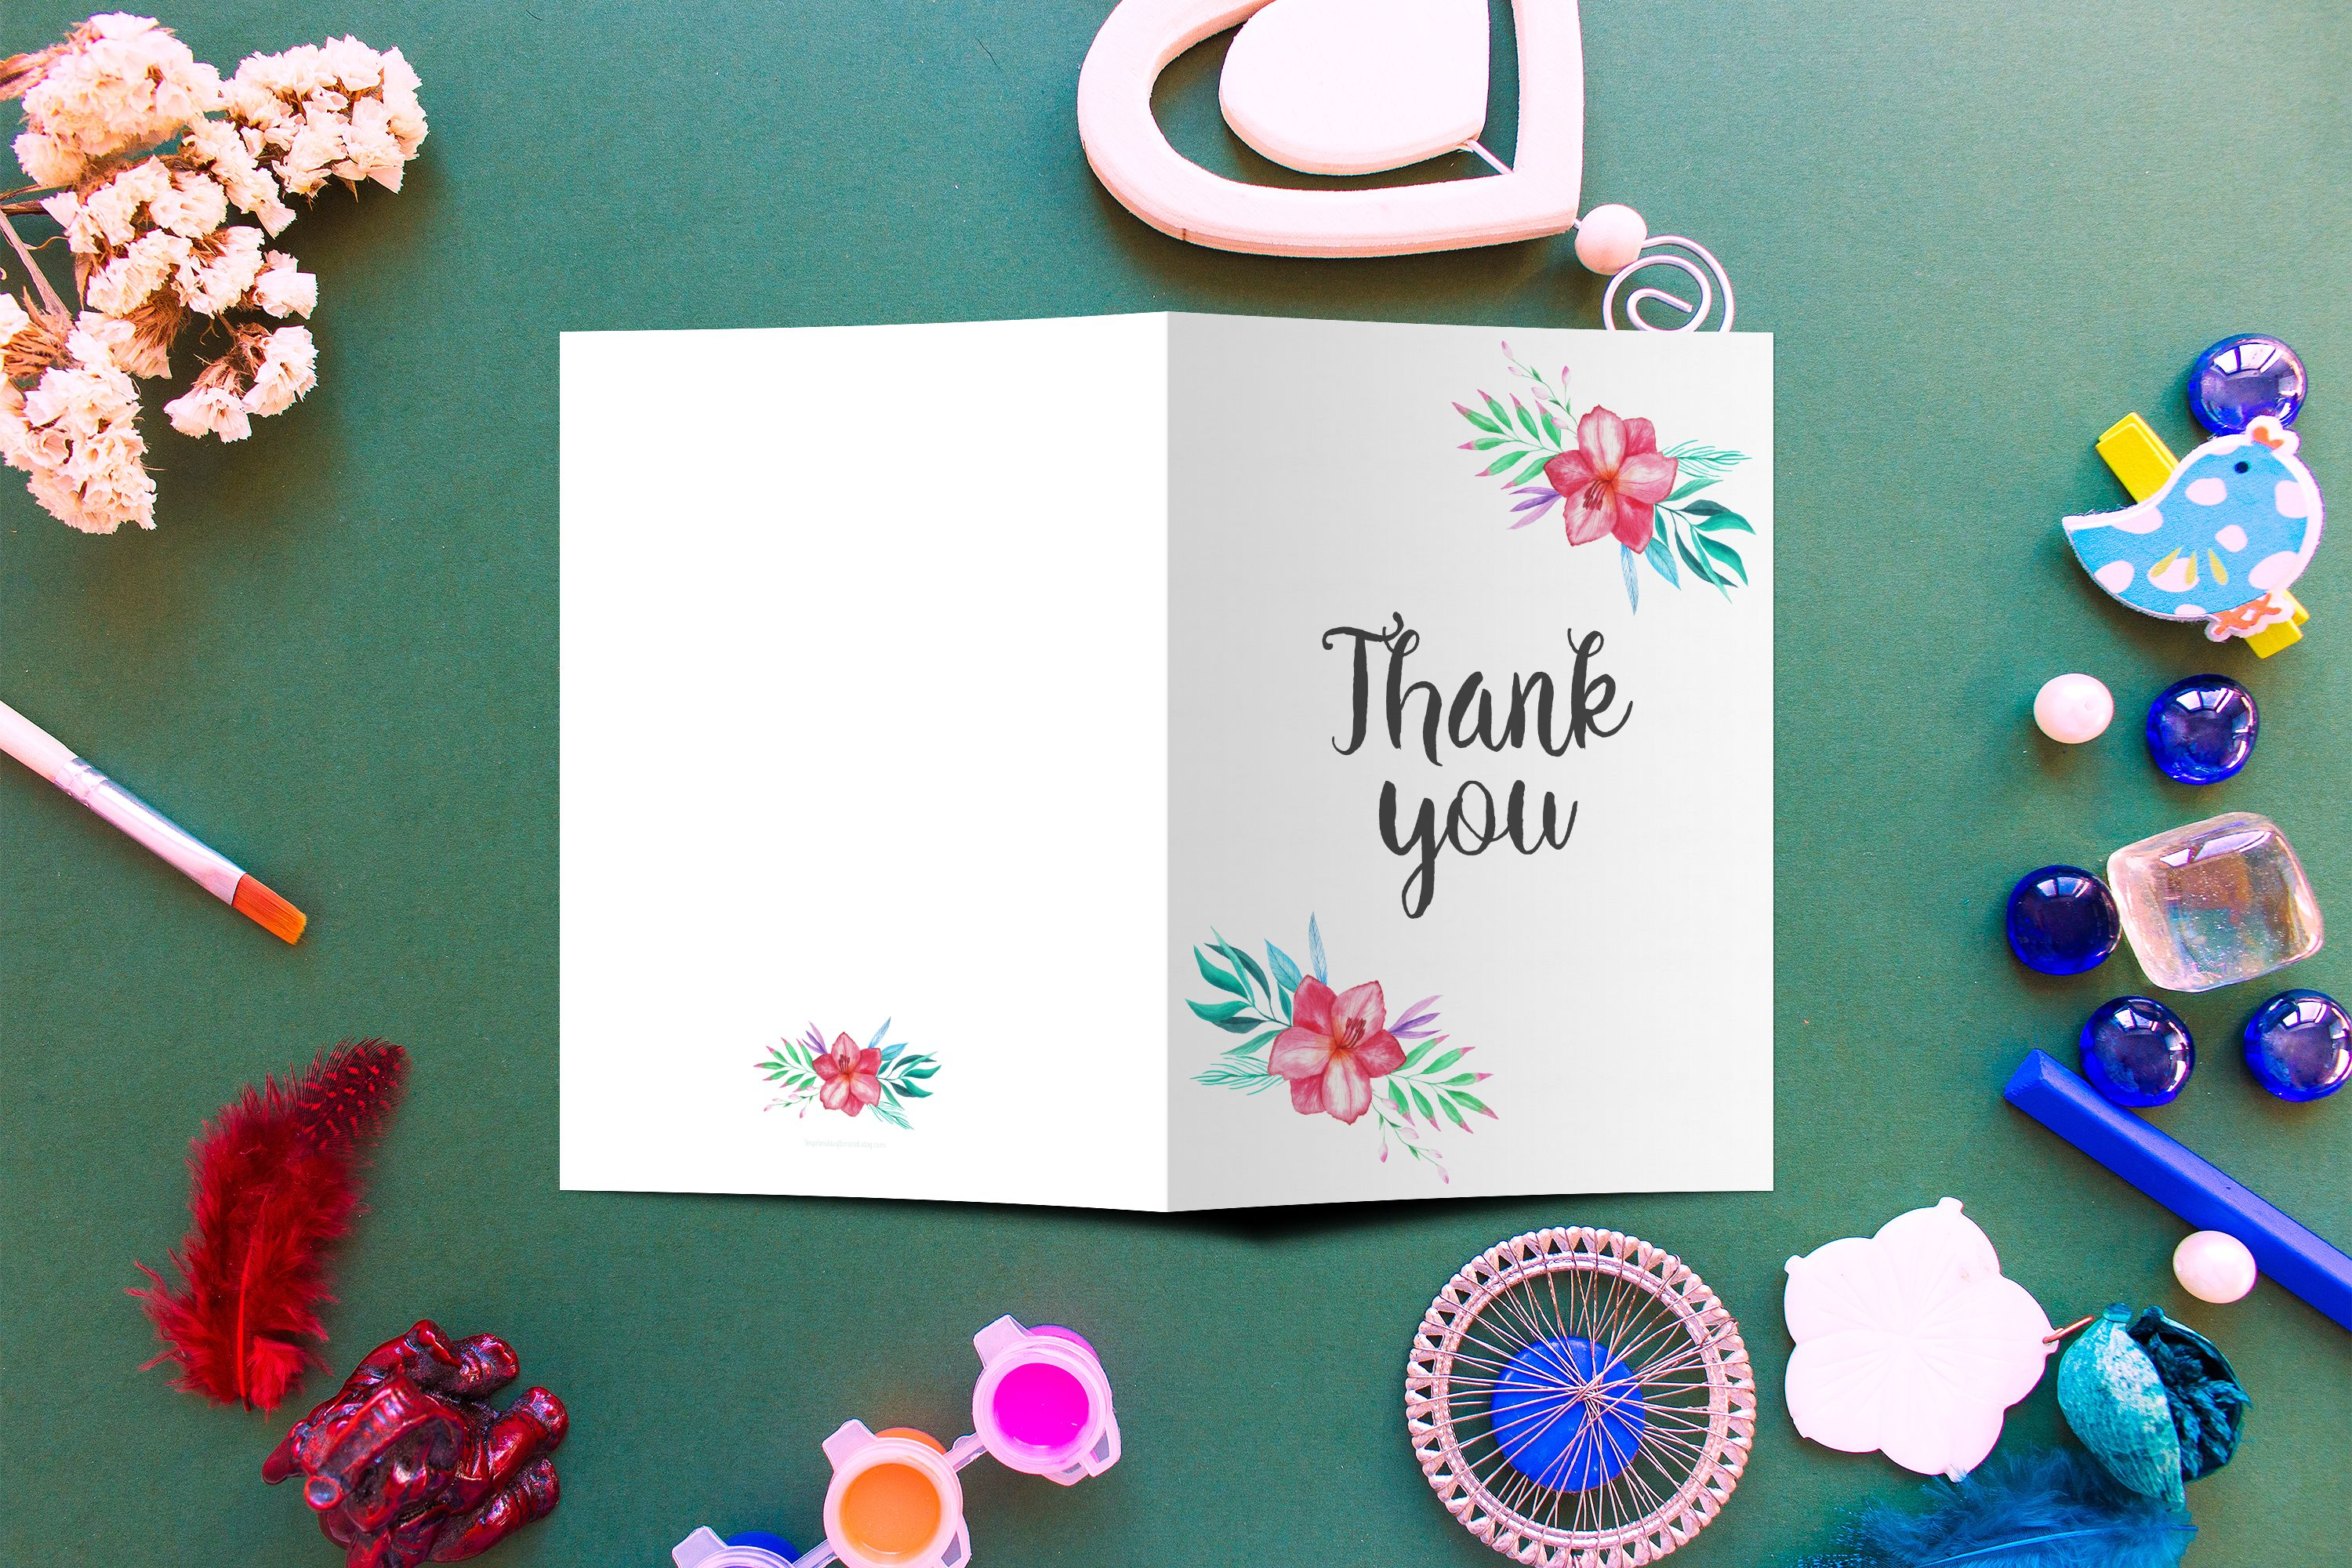 6 pack of thank you cards in english and spanish totaling